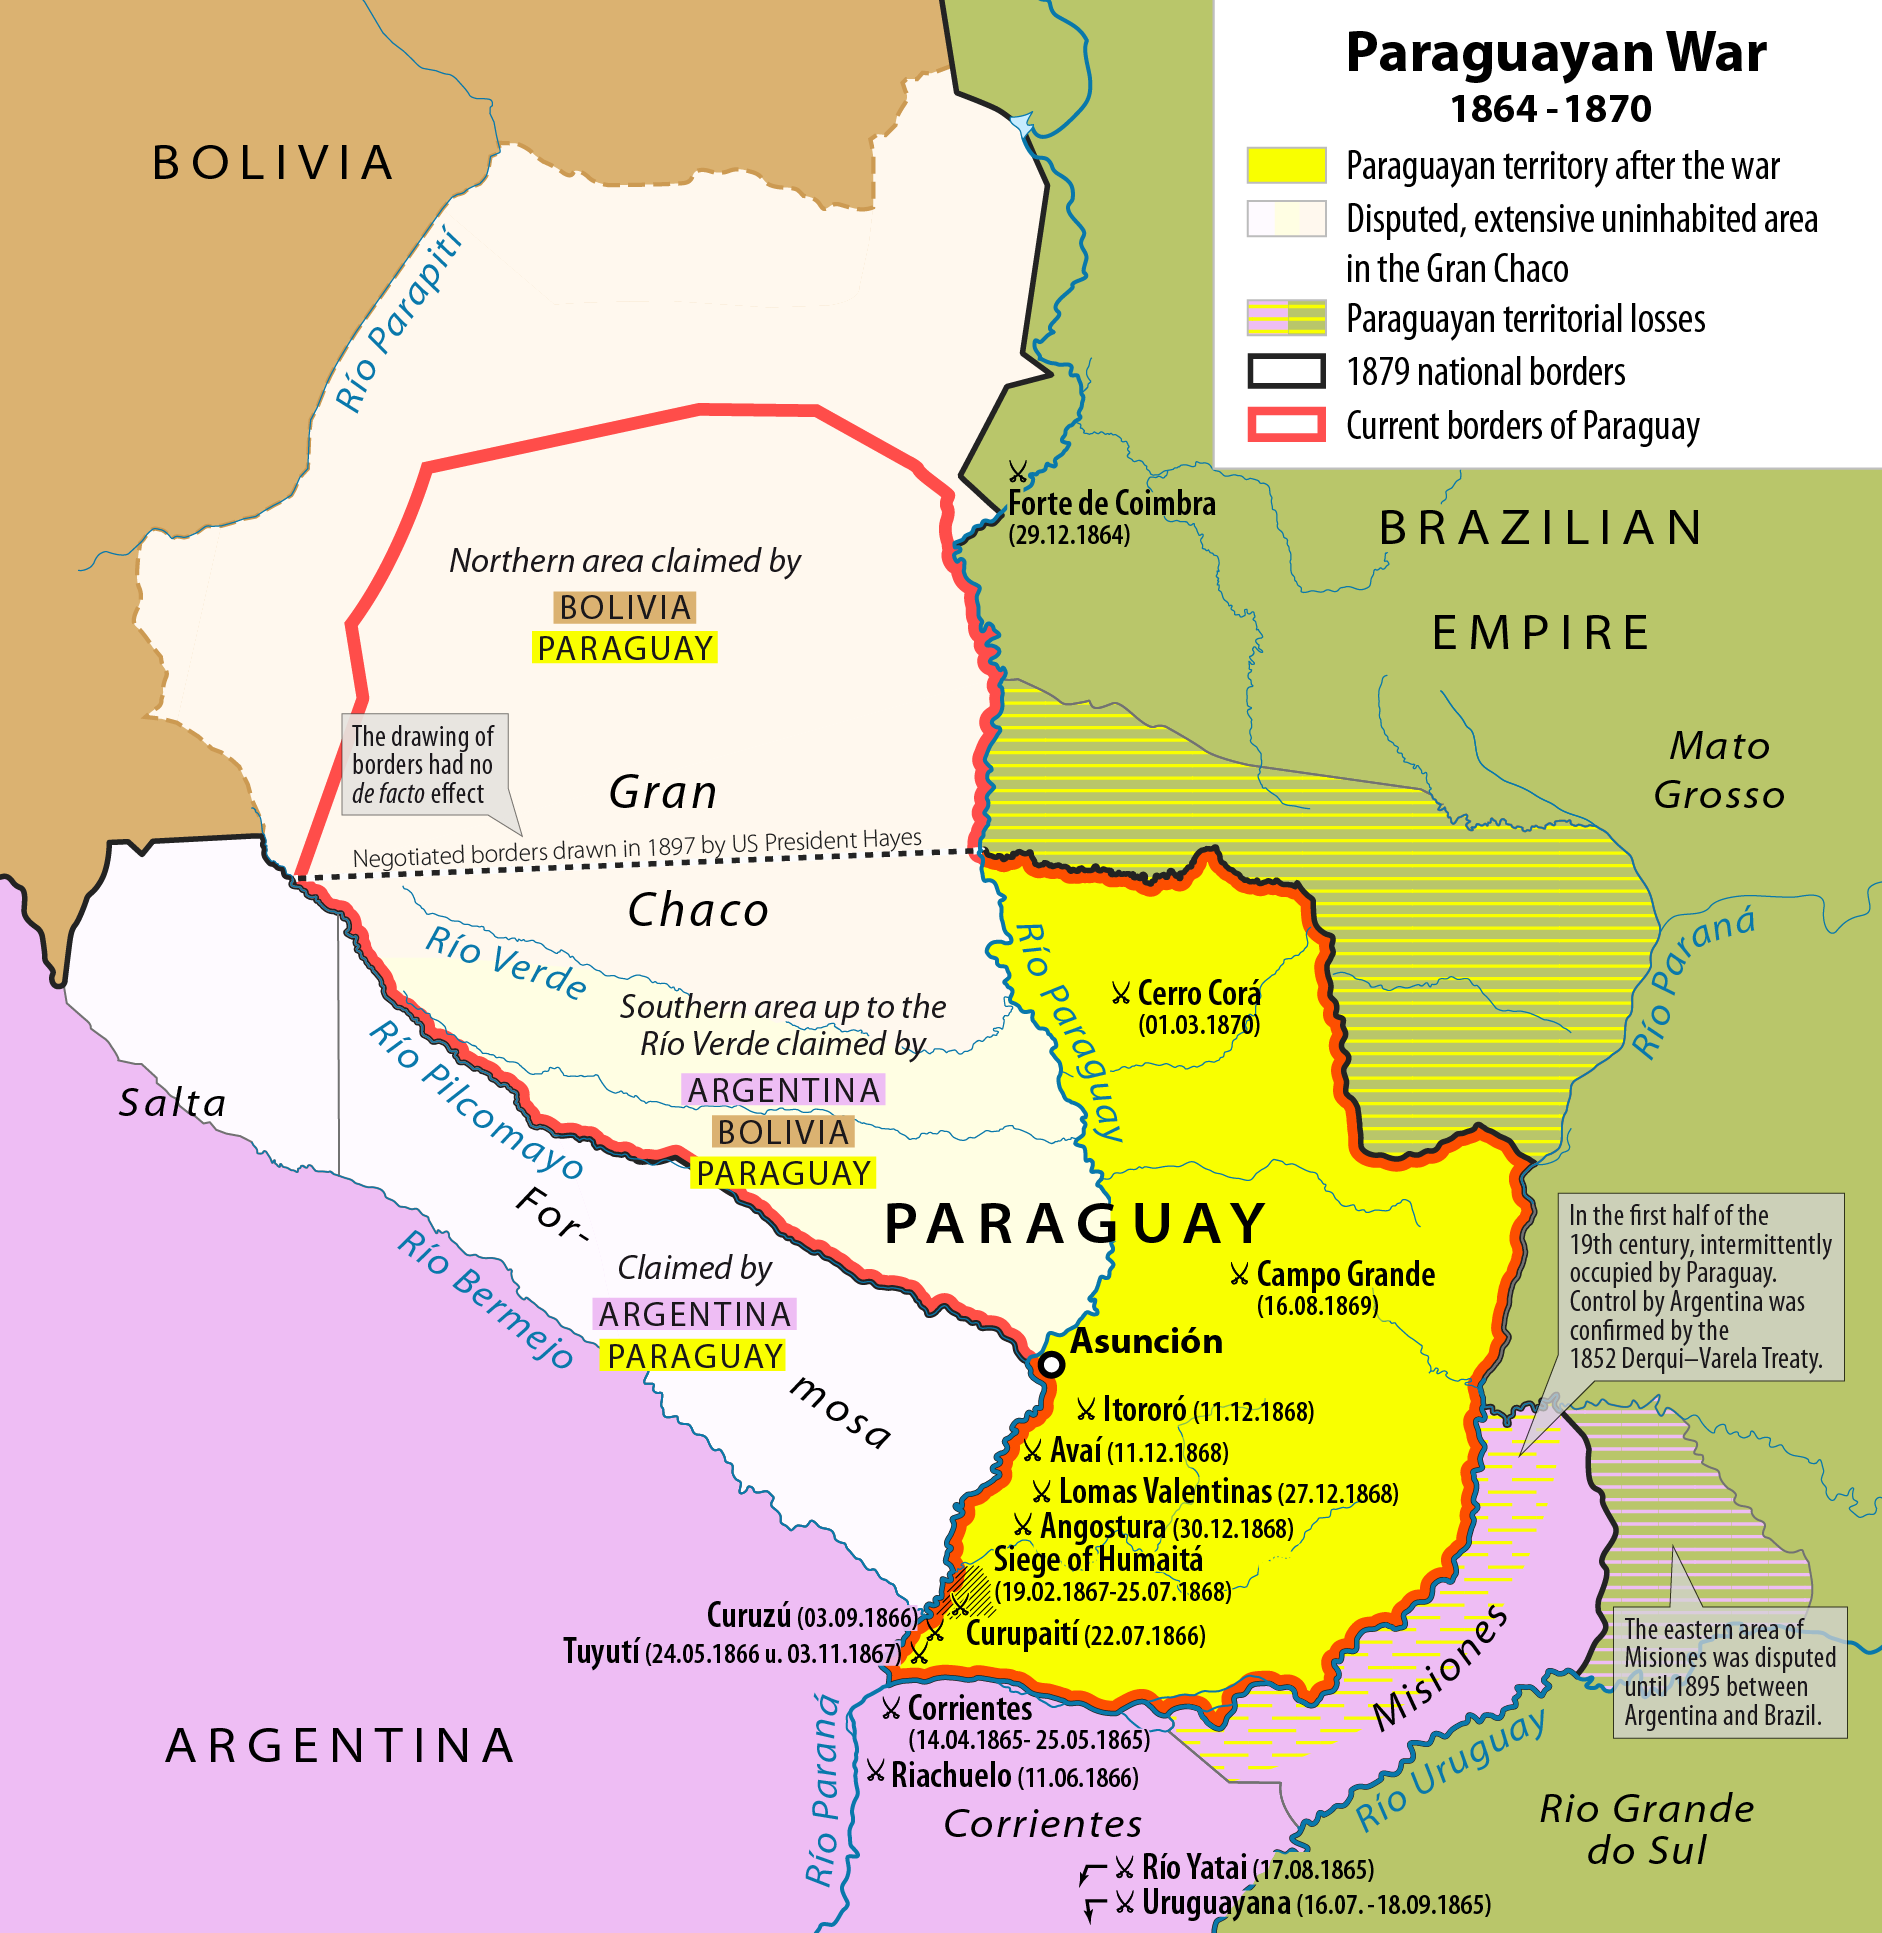 2227th file - 497 KB - 1882x1933 02.01.2018 .. 03.01.2018 (3 versions) upload 4629 .. 4631. Map of the Paraguayan War 1864-1870.png